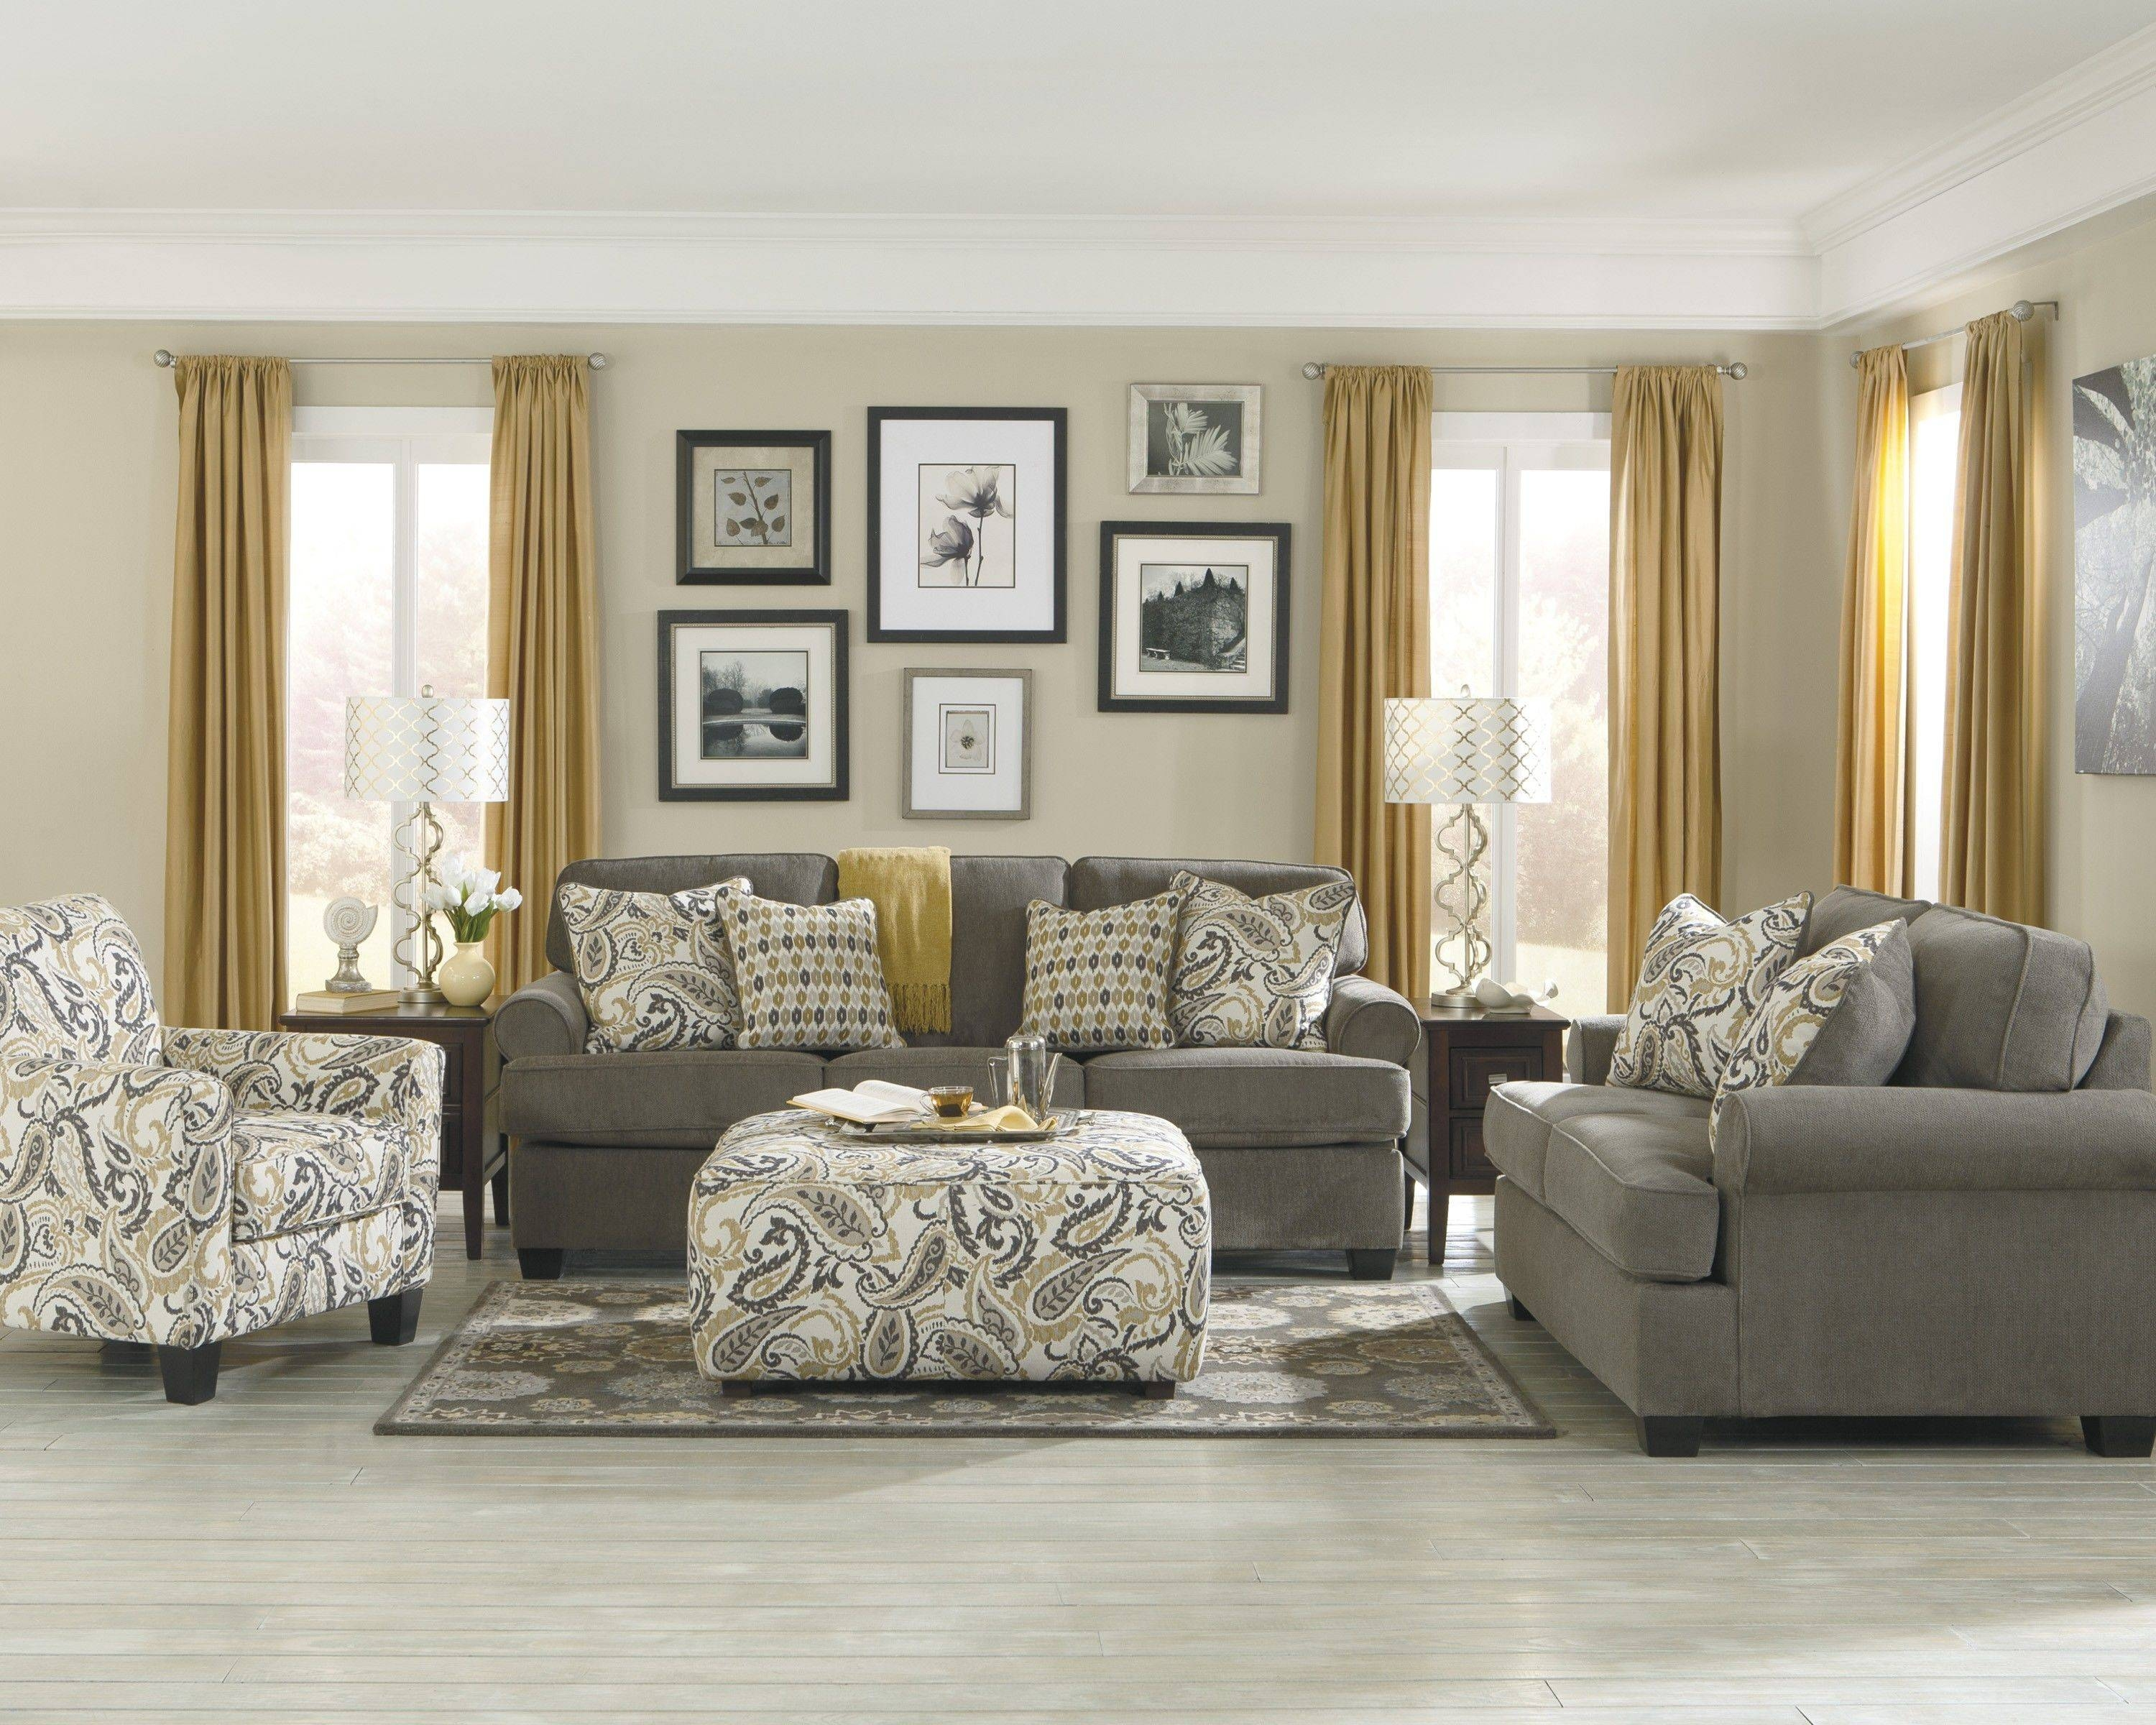 Furniture Home: Breathtaking Grey Leather Living Room Sets Amusing intended for Sofa And Accent Chair Set (Image 18 of 30)